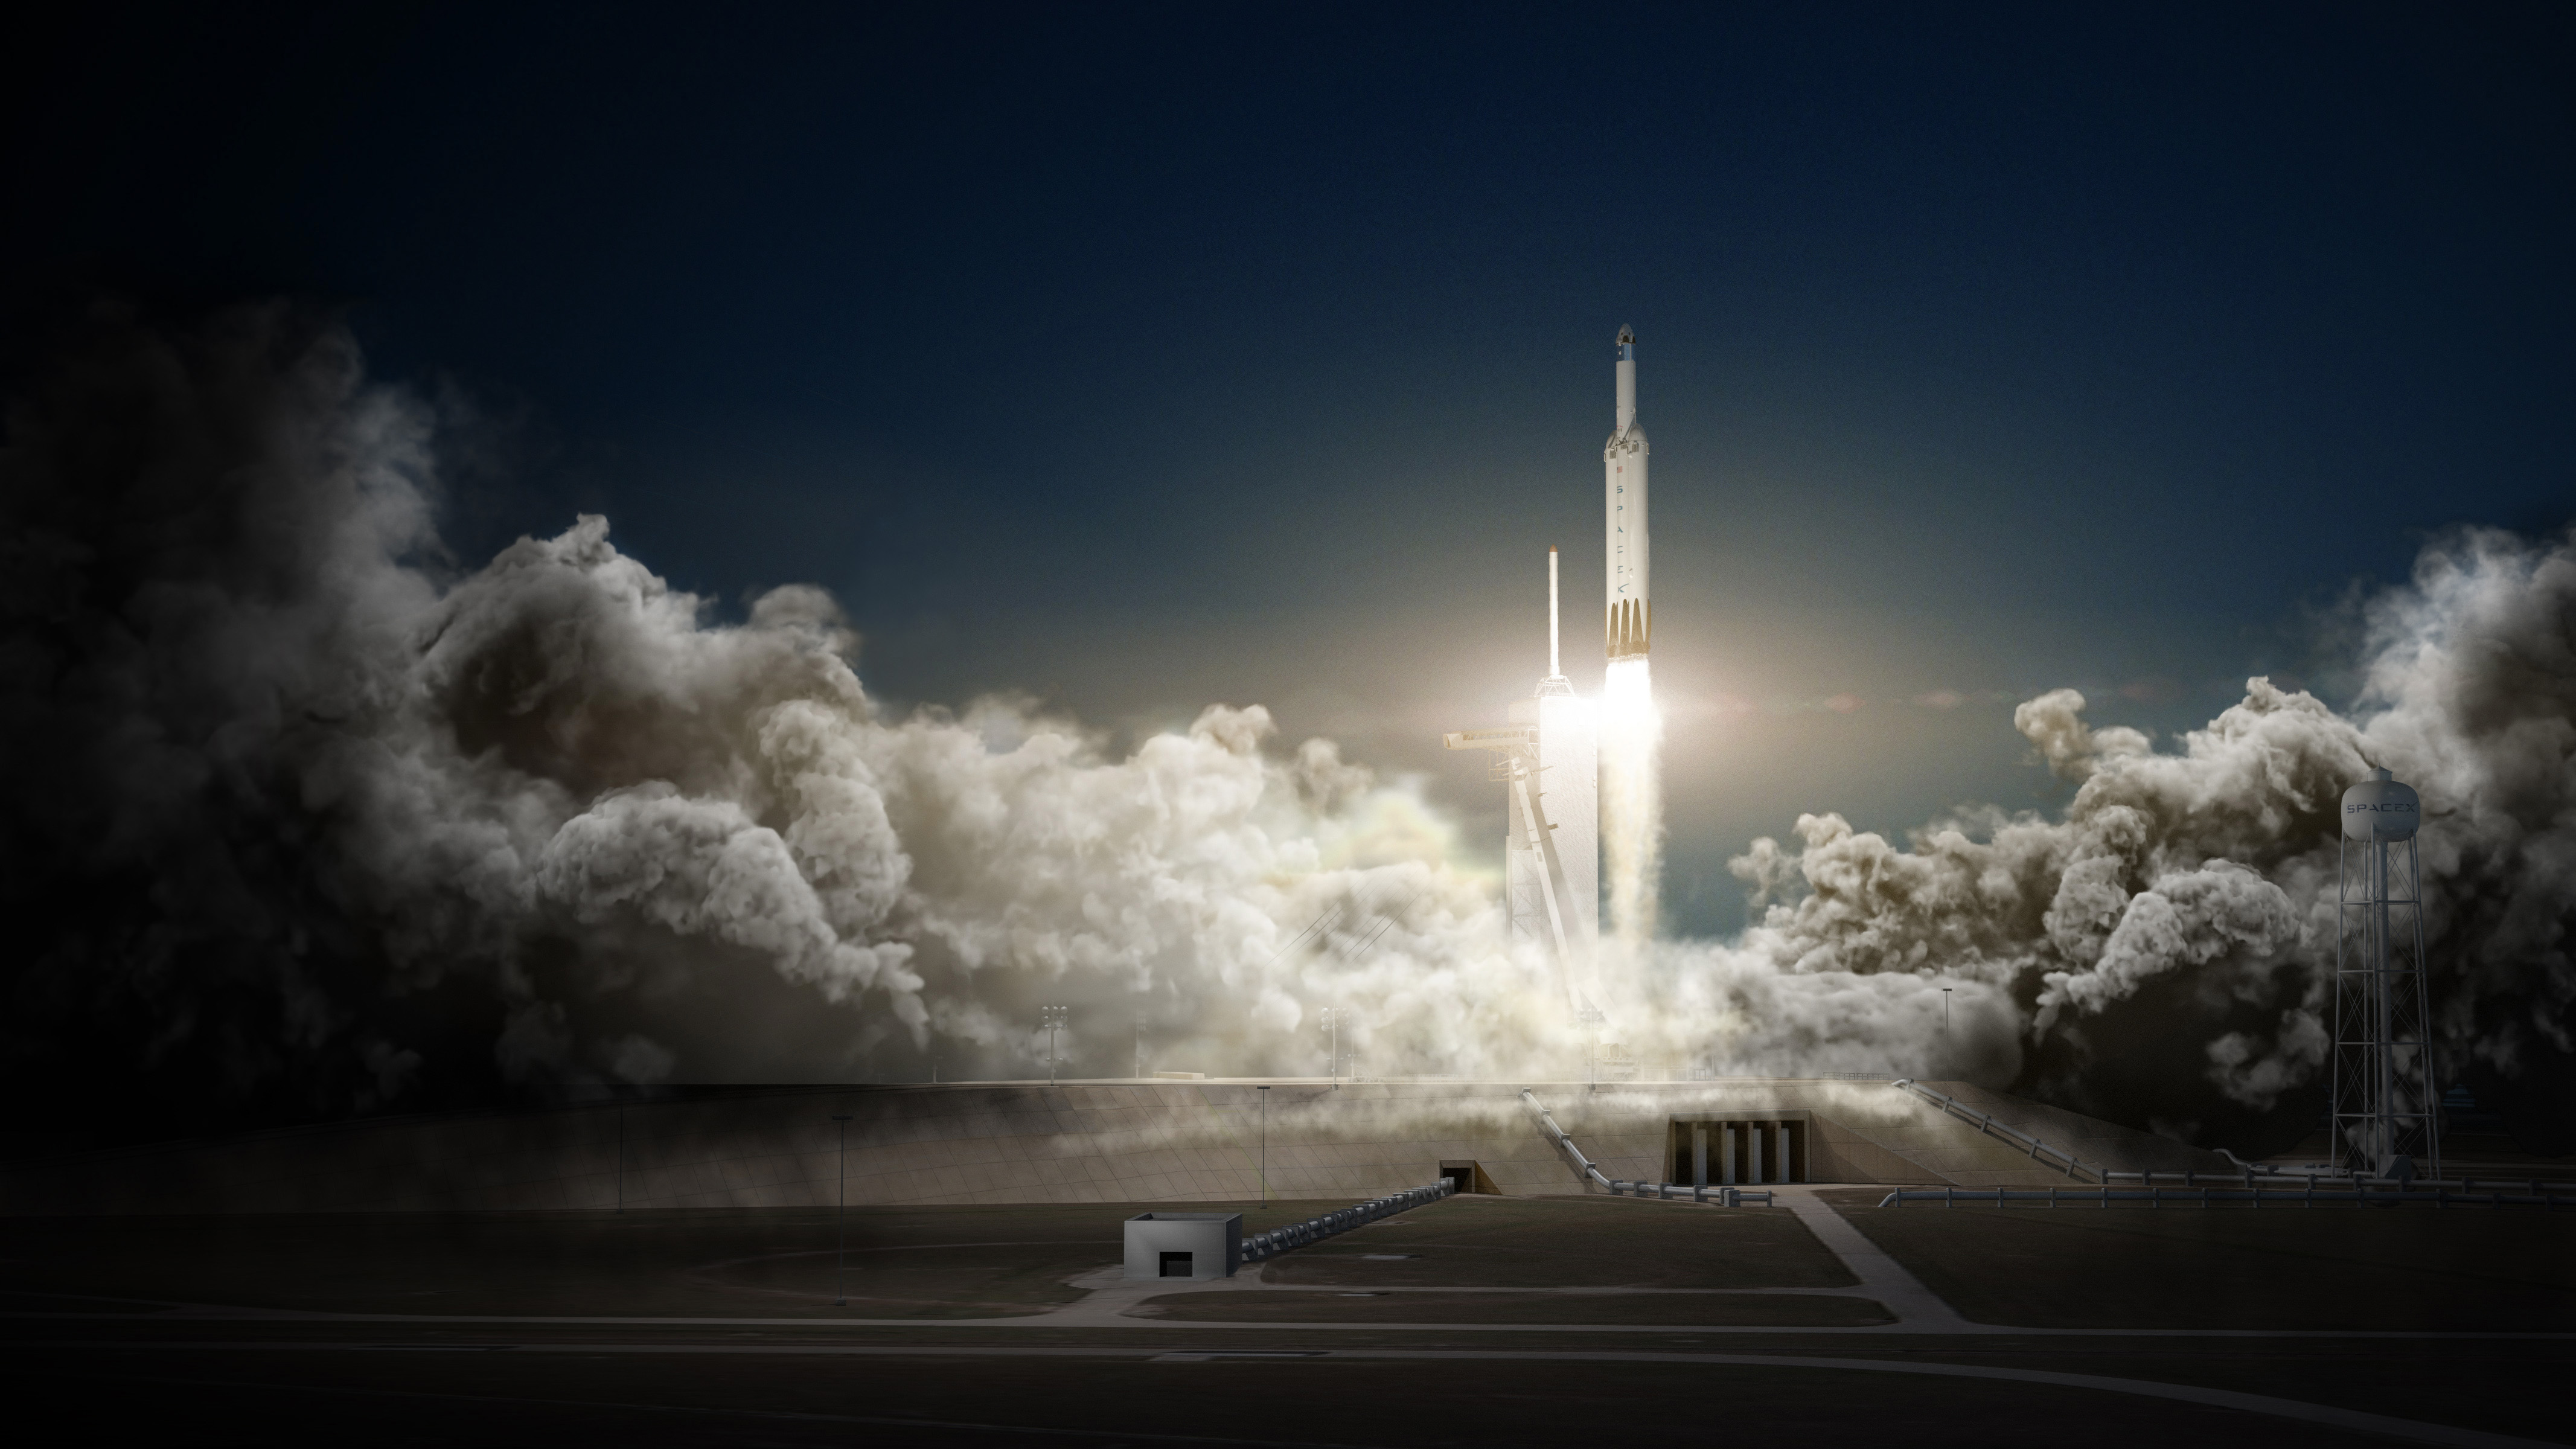 SpaceX to Fly Passengers On Private Trip Around the Moon in 2018